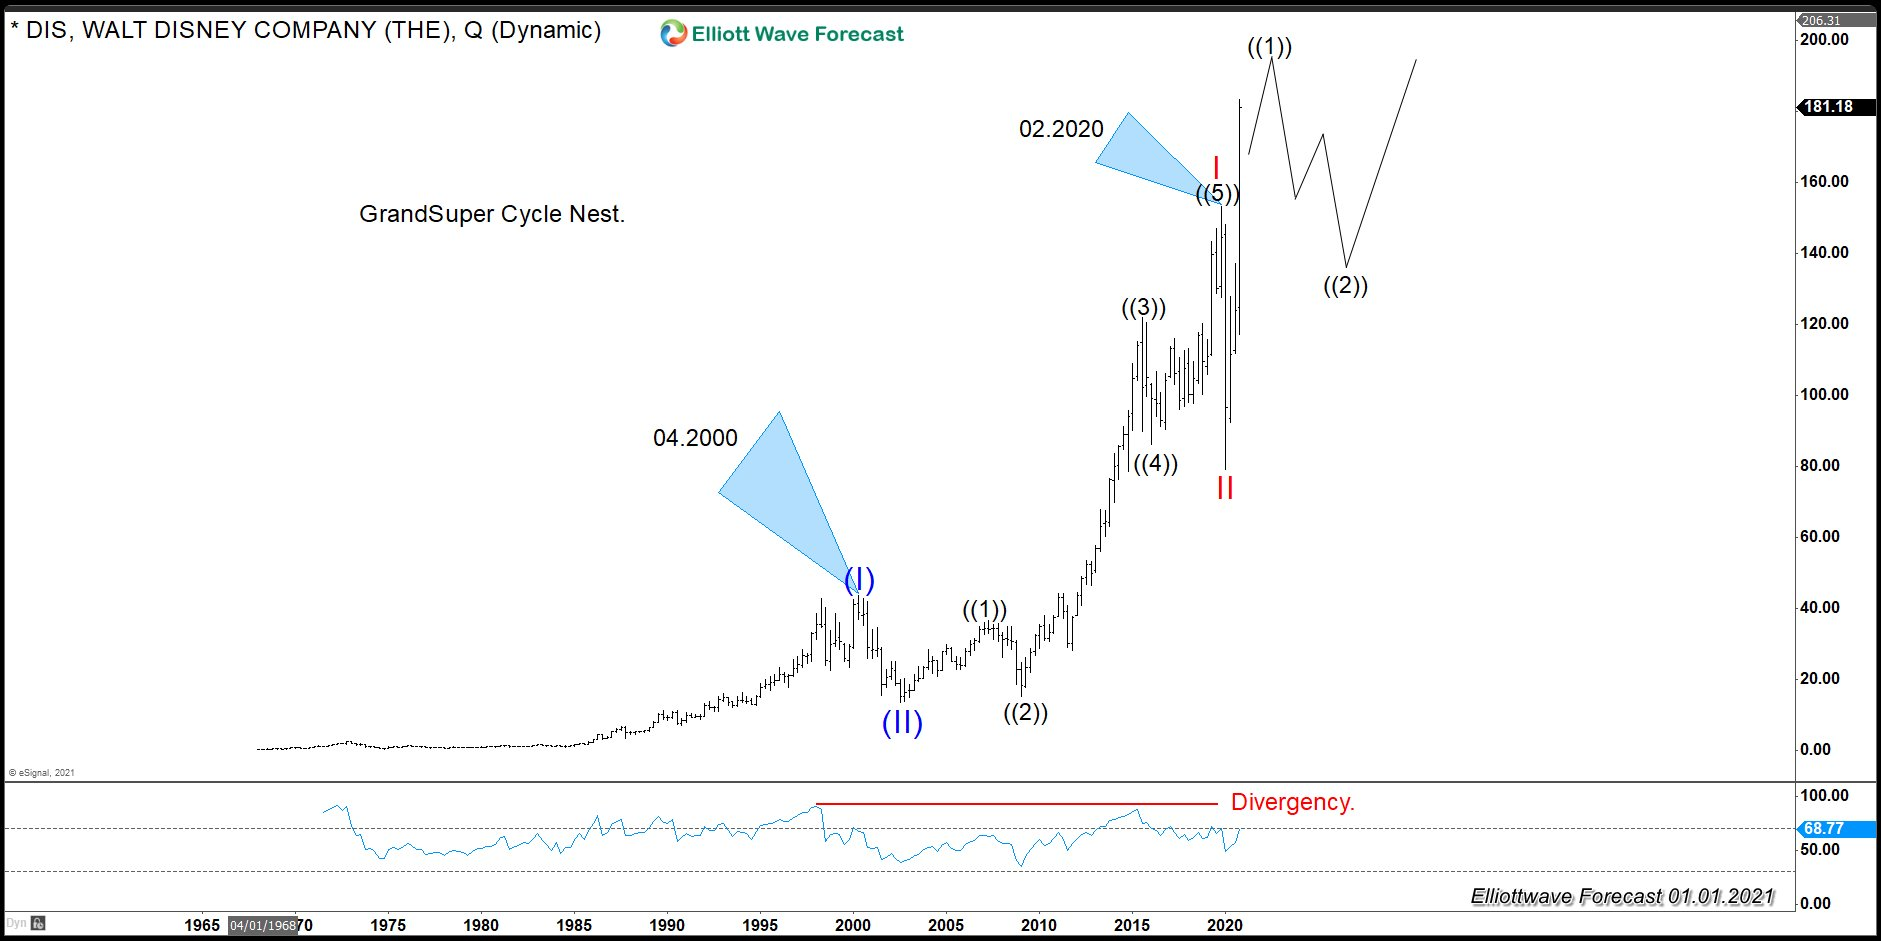 DIS (Walt Disney): A Possible Huge Move Coming Across The Market